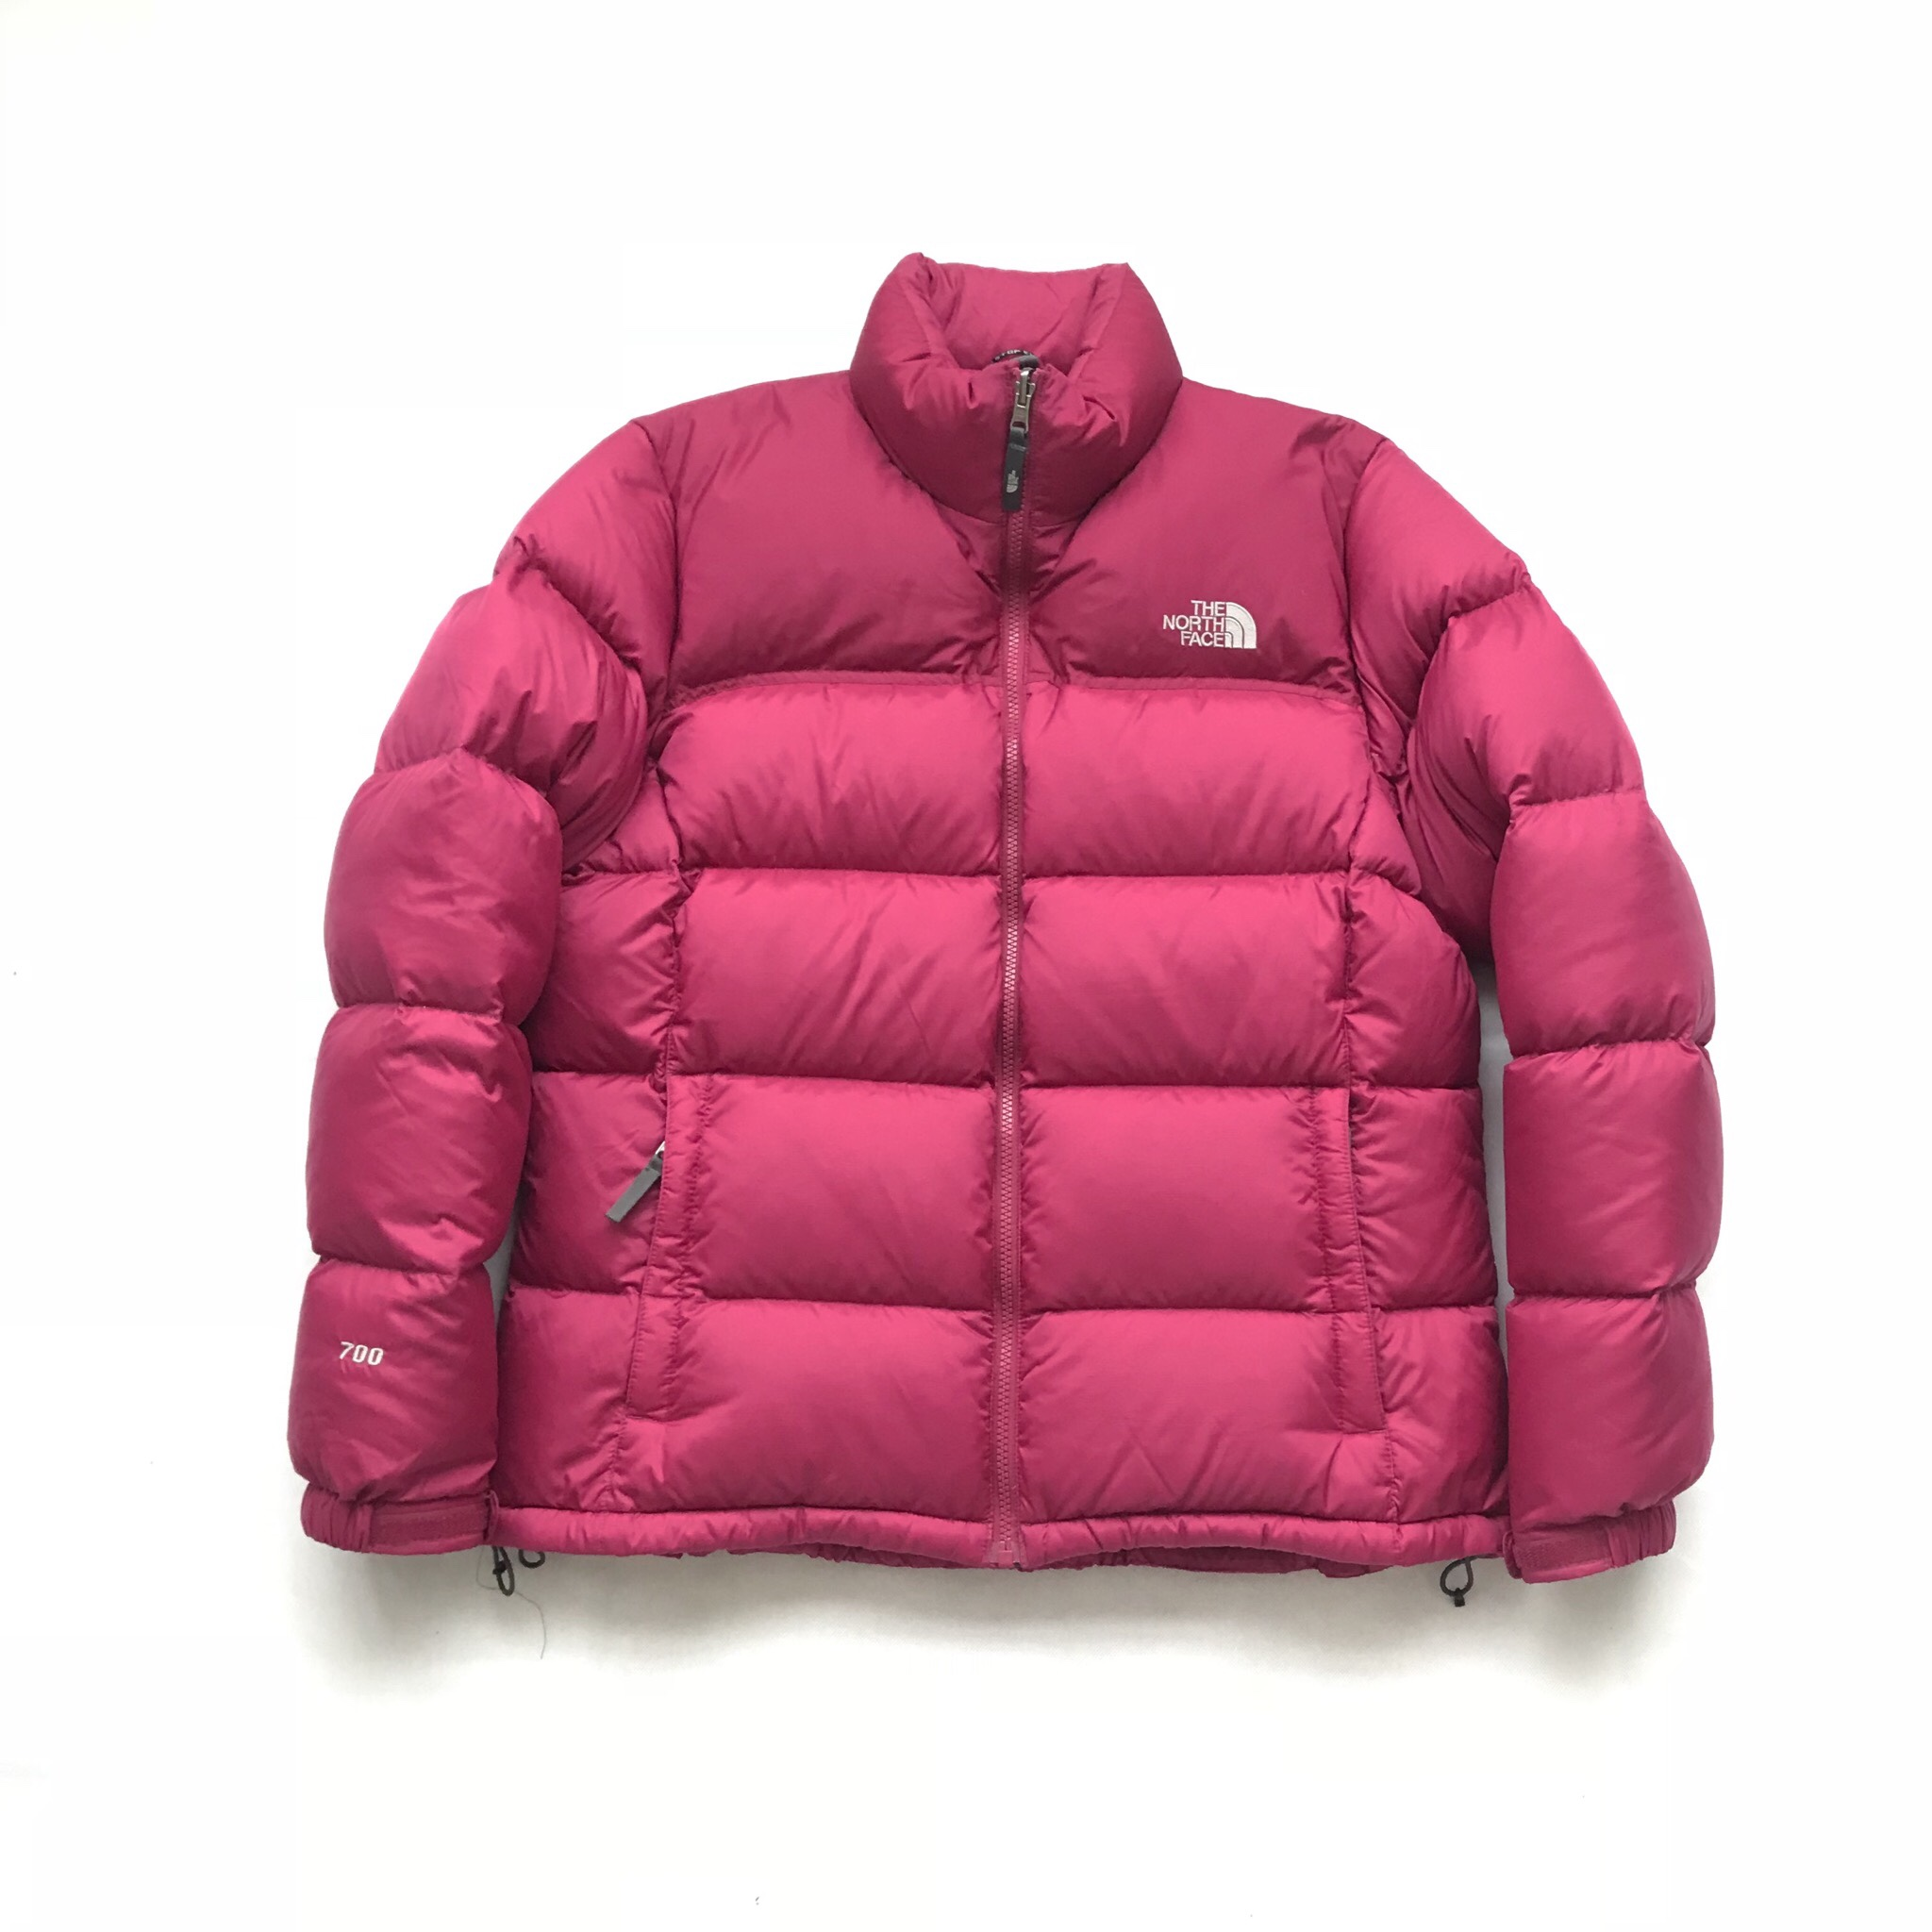 b43114859 The North Face Puffer Jacket Pink / Purple 700... - Depop